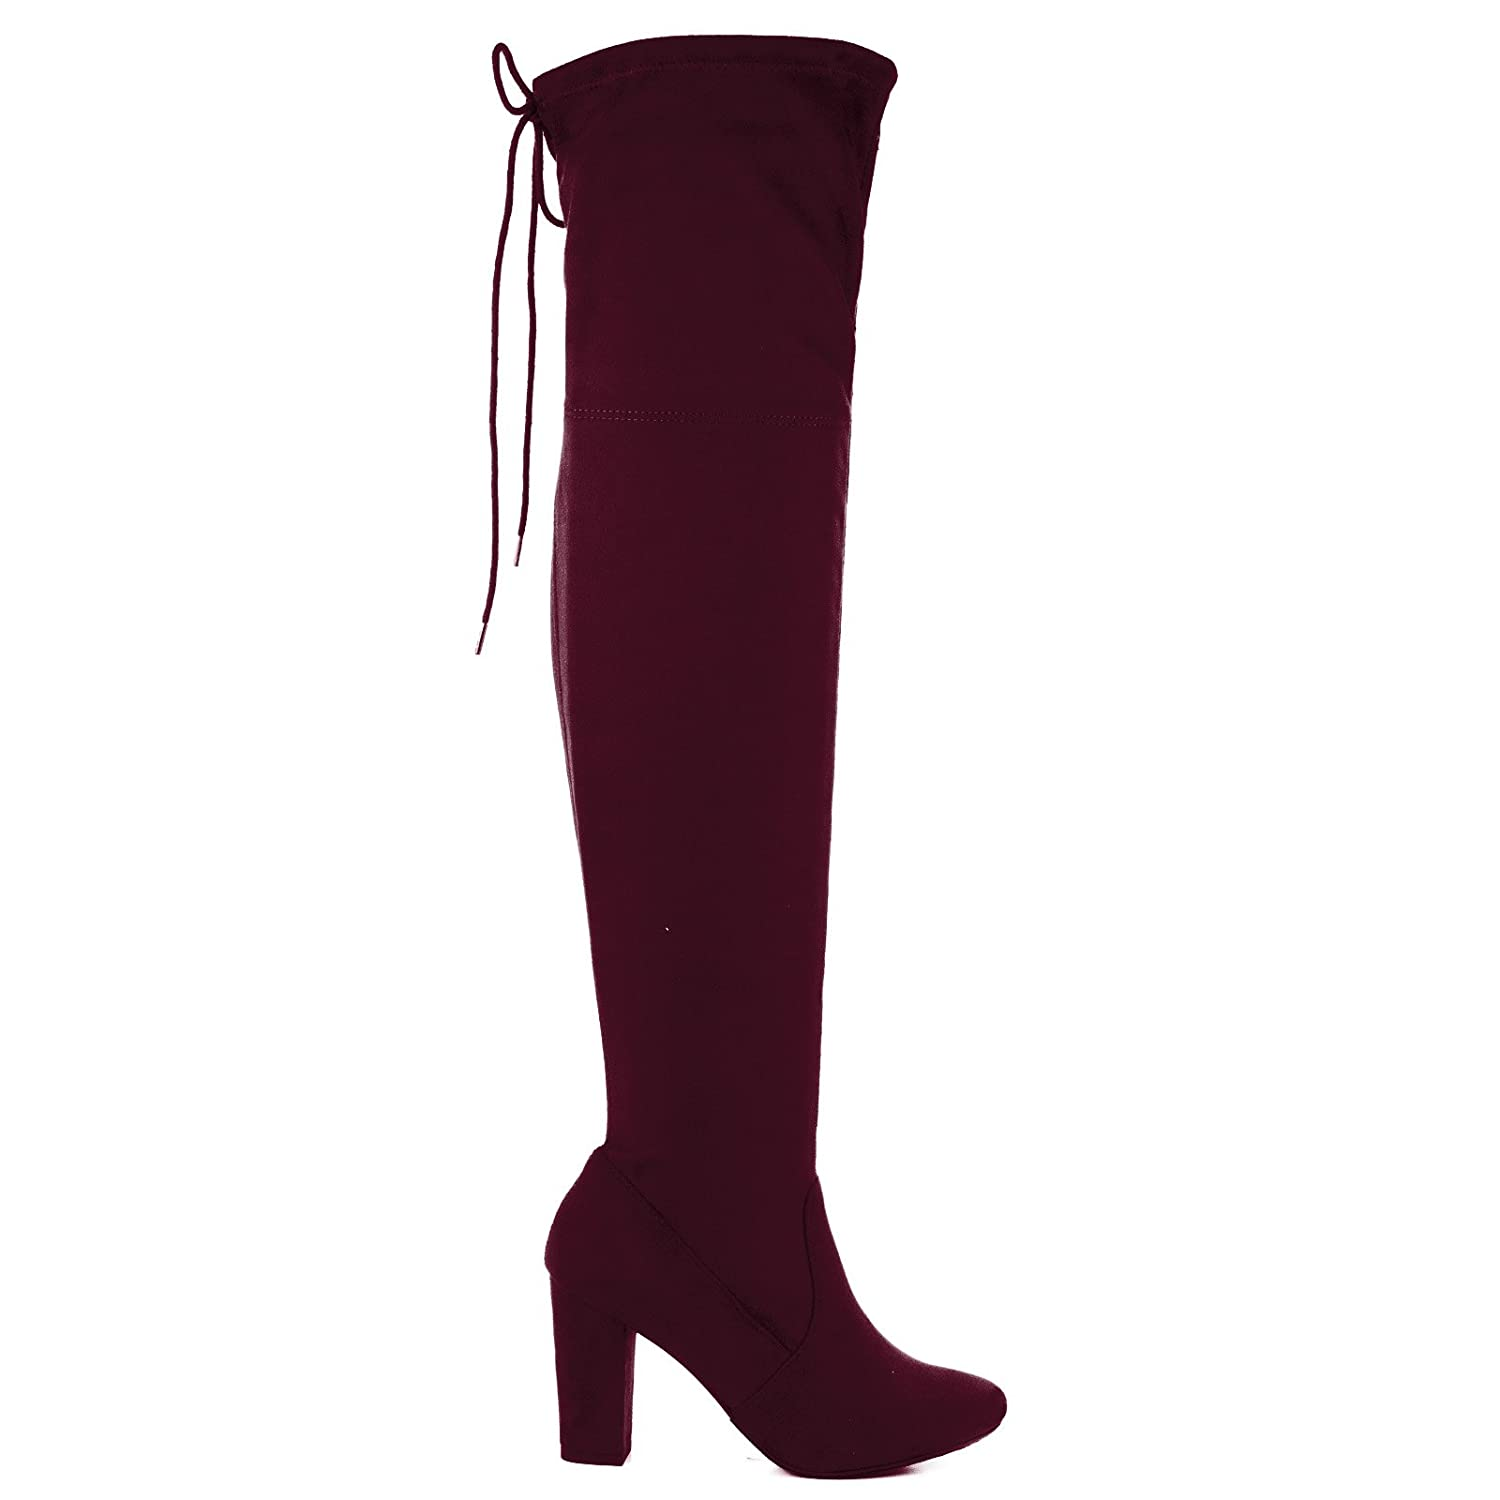 Snivy Vino OTK Over The Knee Thigh High Slouchy Boots w/ Back Lace Tie & Block Heel -7